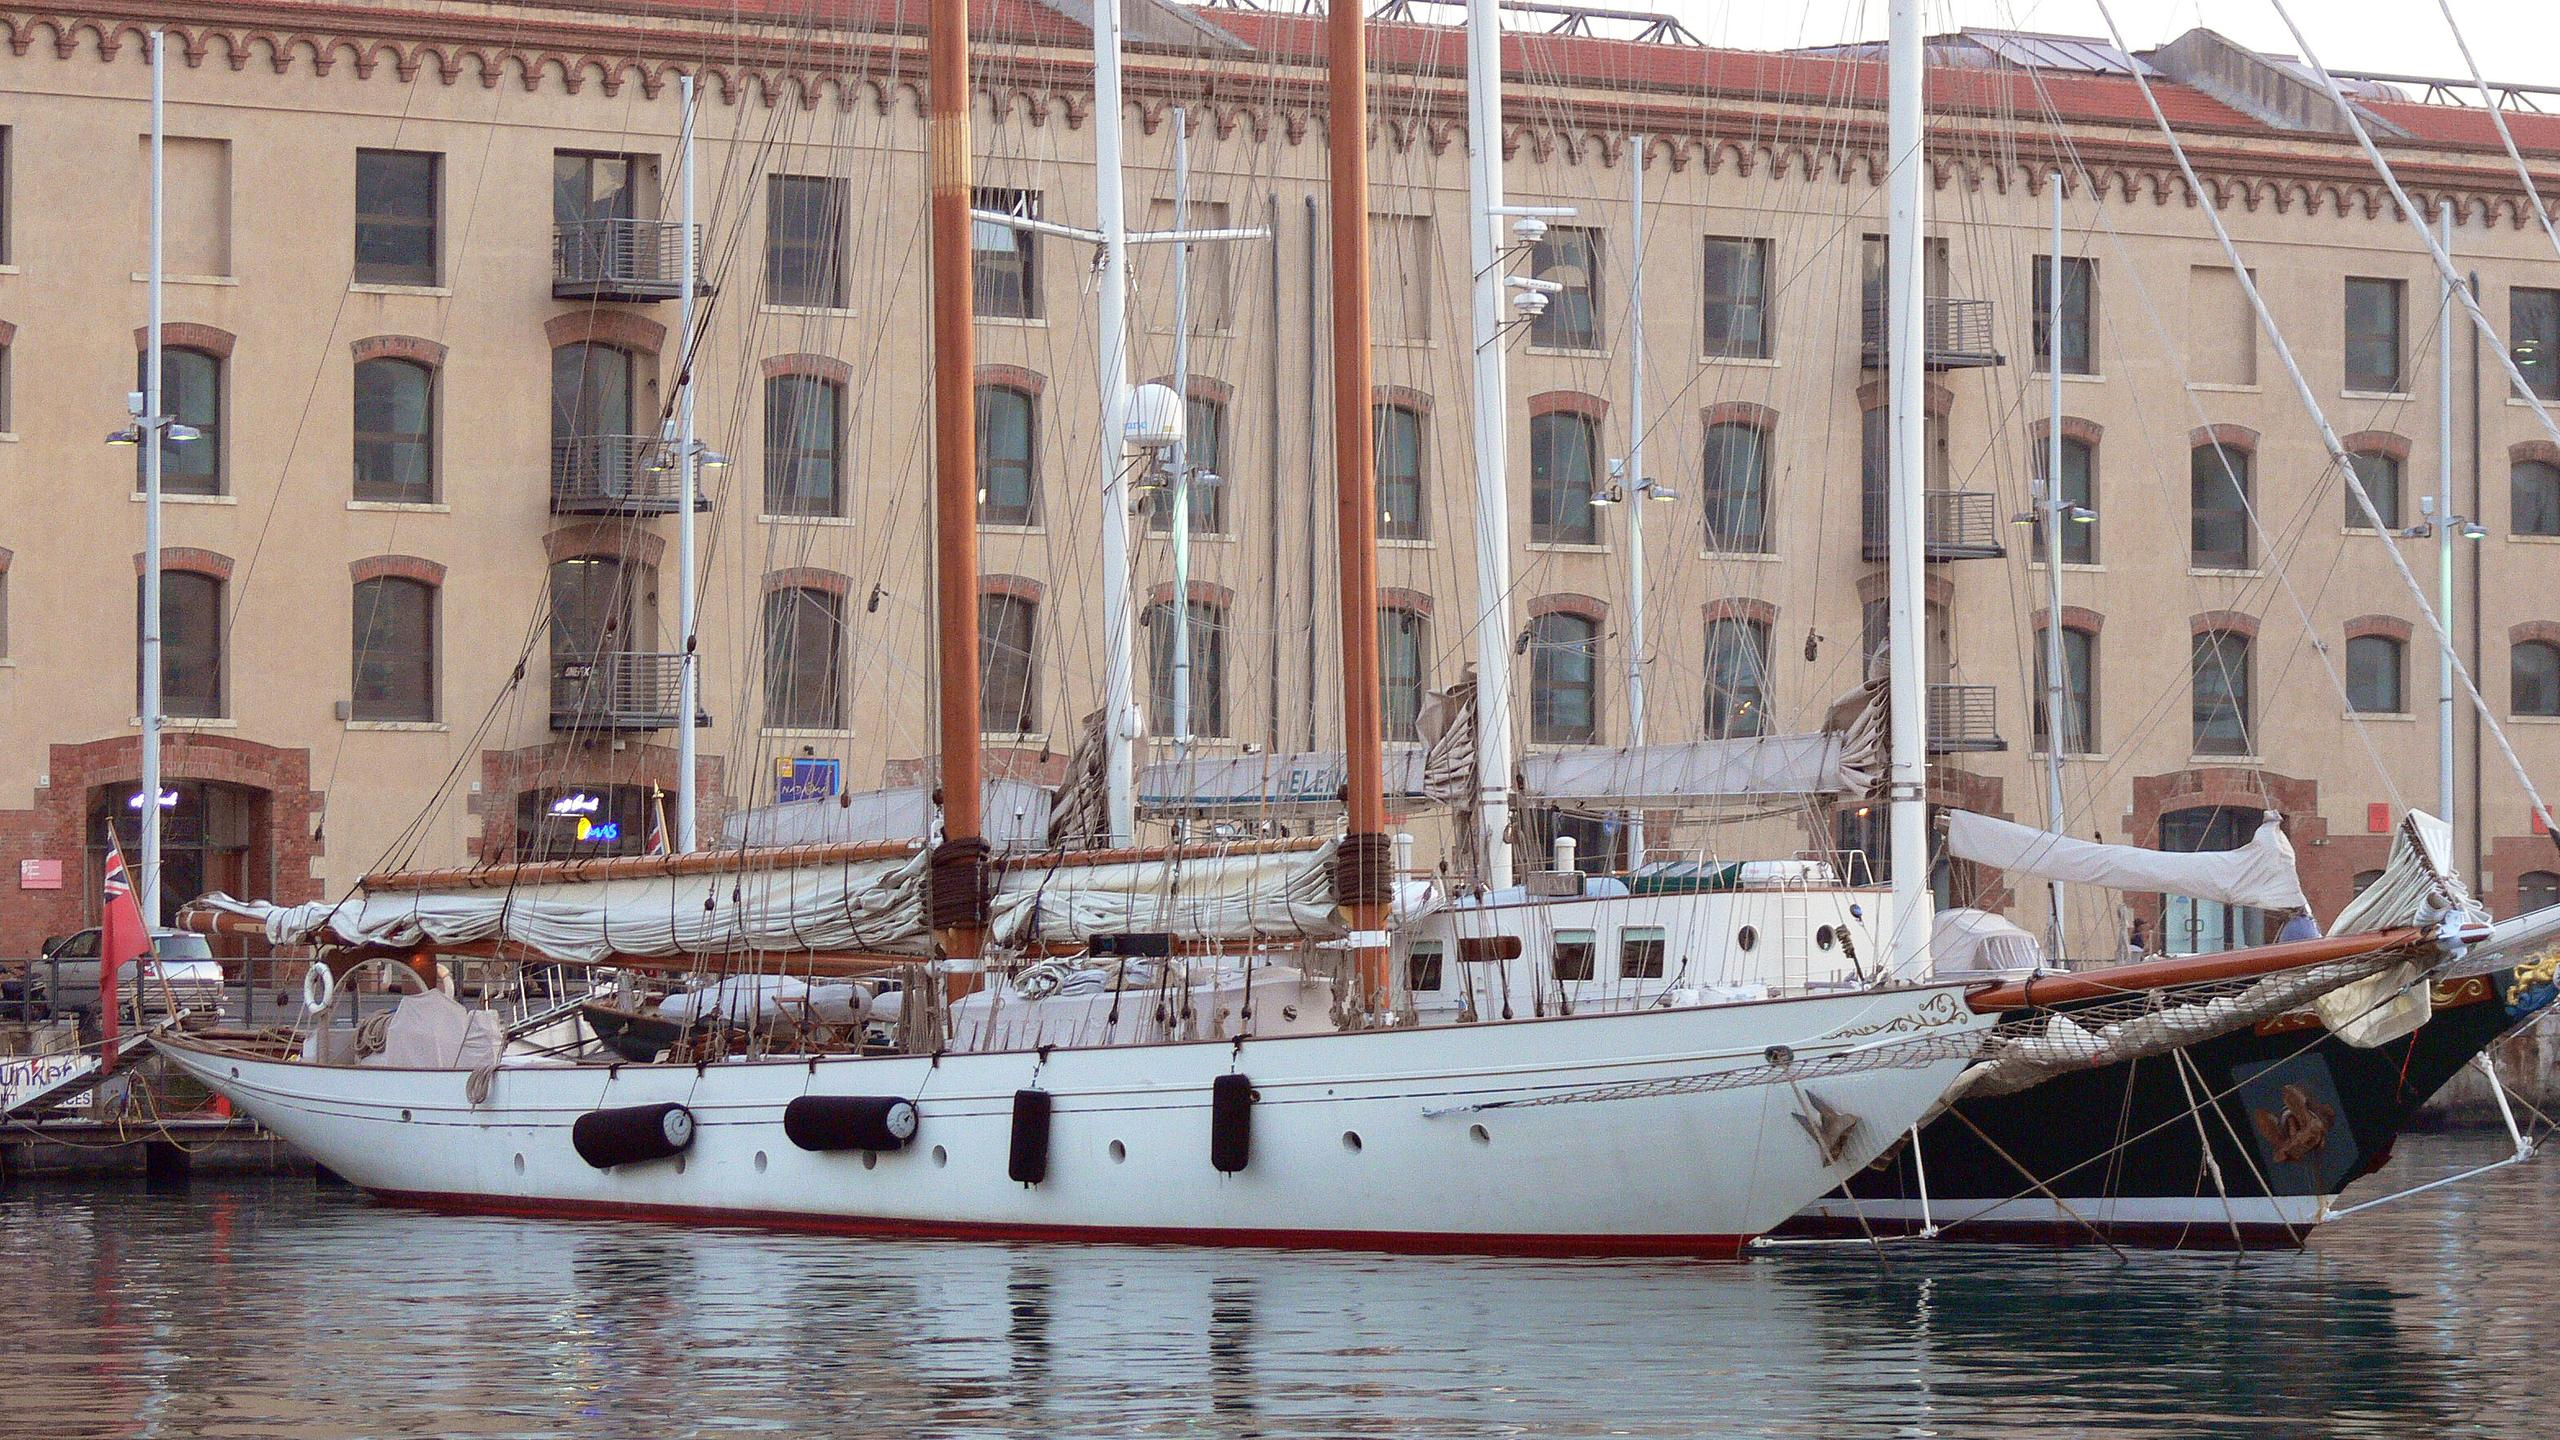 orion-sailing-yacht-camper-ncholsons-1910-45m-half-profile